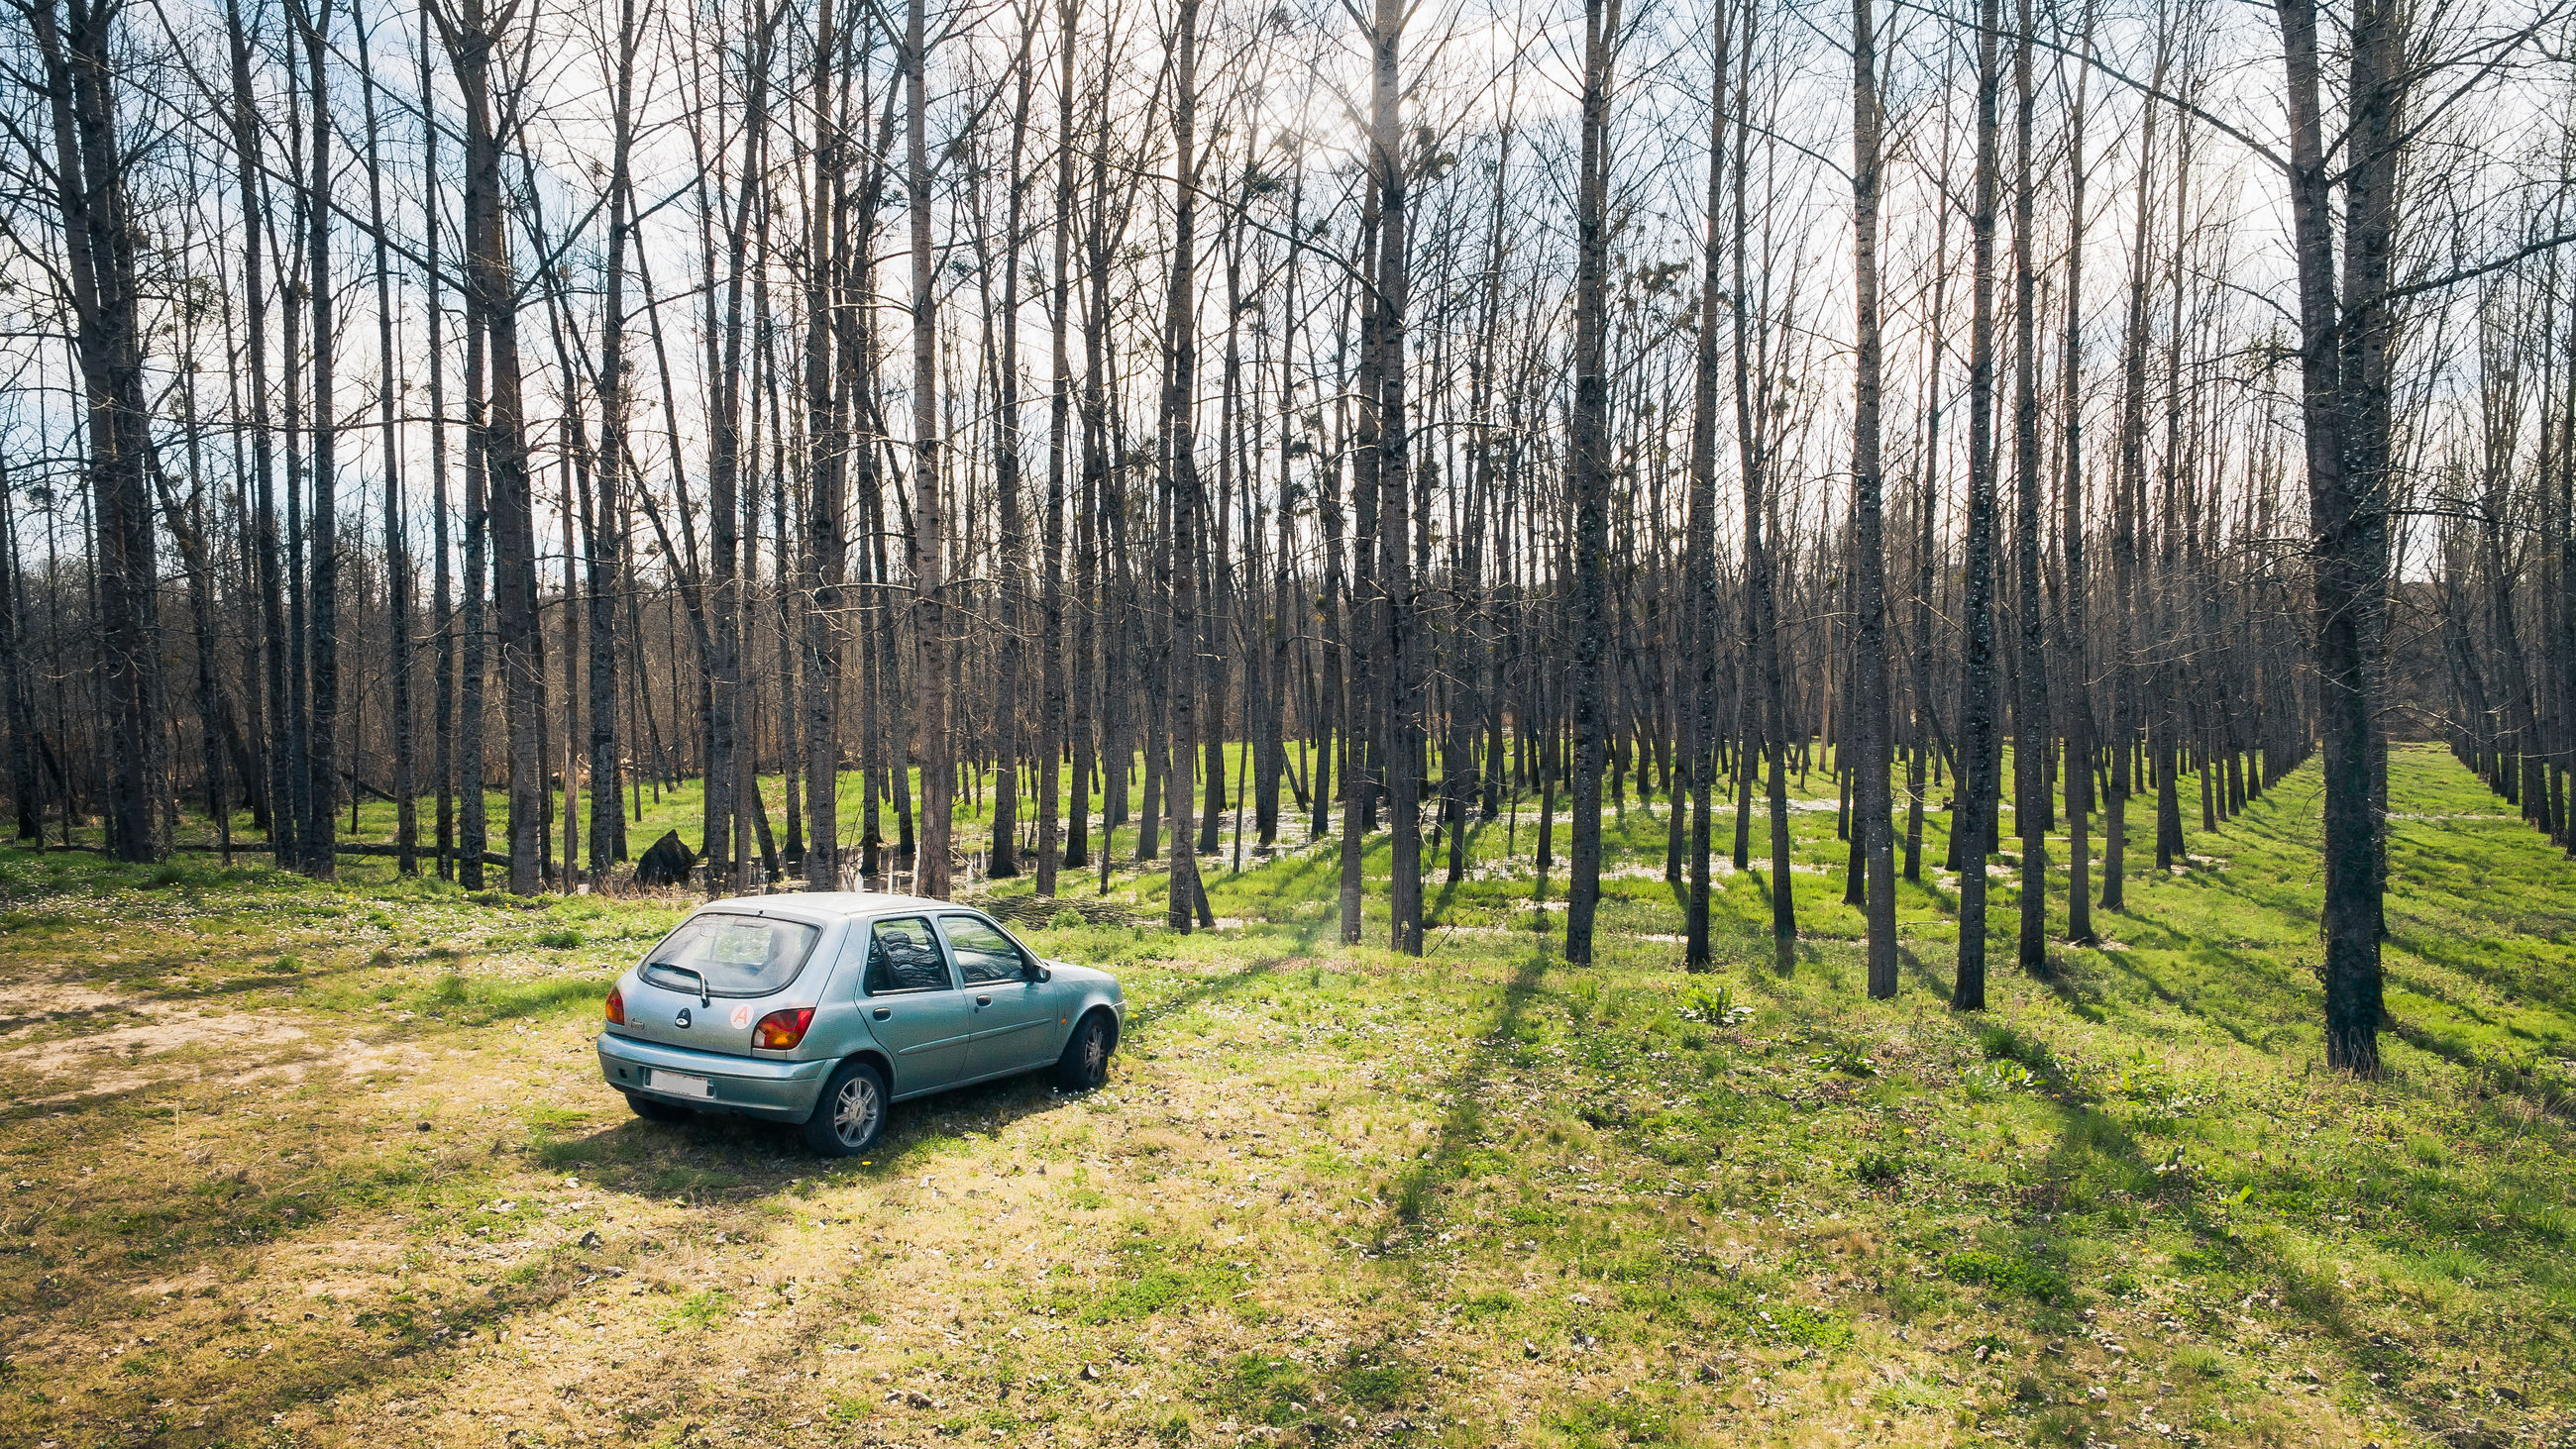 tree, nature, transportation, land vehicle, sunlight, no people, outdoors, forest, tranquility, growth, day, beauty in nature, sky, scenics